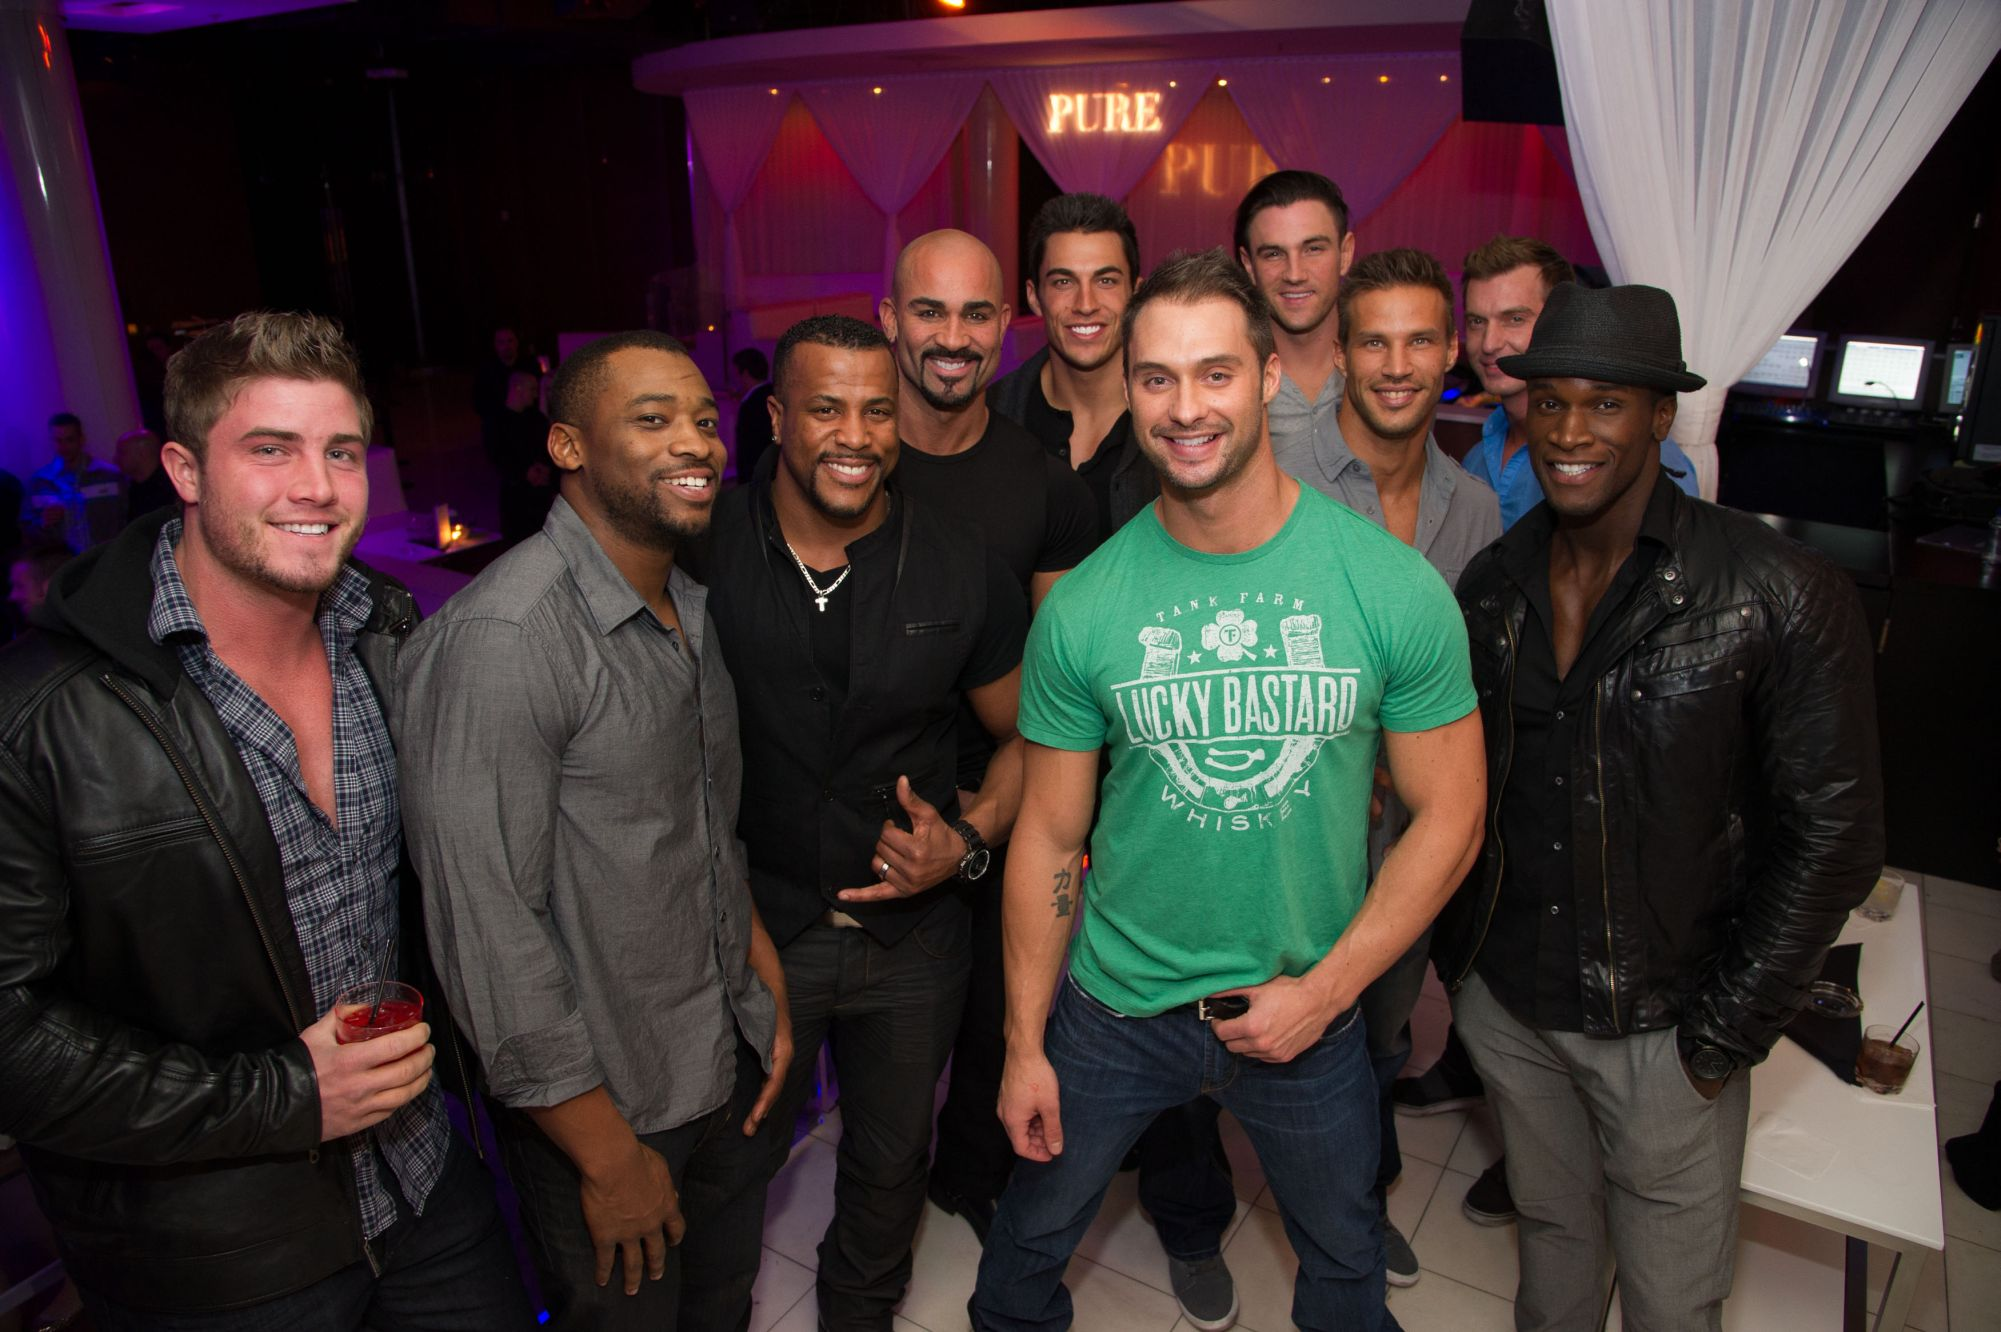 The Chippendales crew celebrate their 2013 calendar release at PURE nightclub in Las Vegas Dec. 16. From left to right: Gavin McHale, Kenny King, Bryan Cheatham, John Rivera, Jon Howes, Mikey Cross, Sami Eskelin, John Cook, Chaun Thomas and center James Davis. ( Al Powers/Powers Imagery)